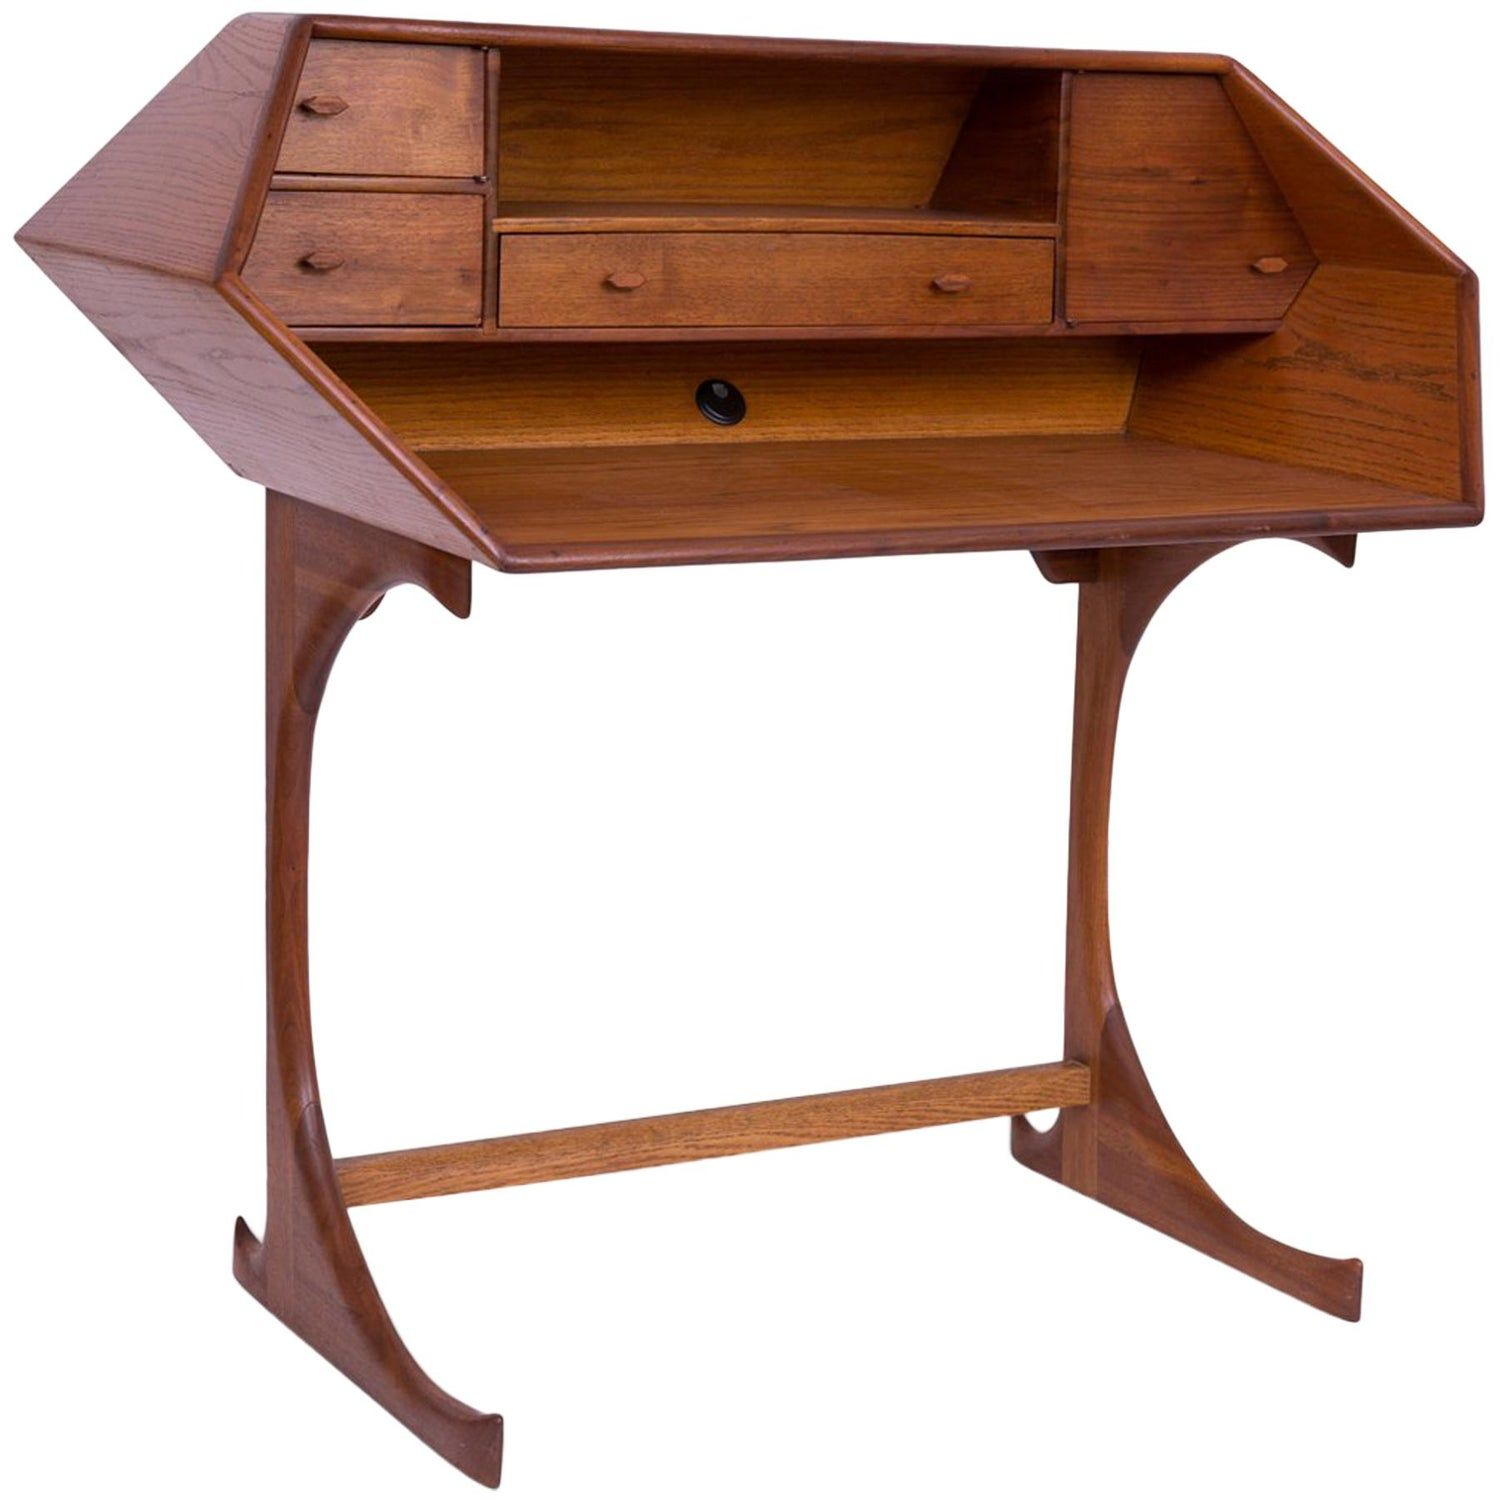 Studio Crafted One off Walnut and Oak Desk (With images)  Oak